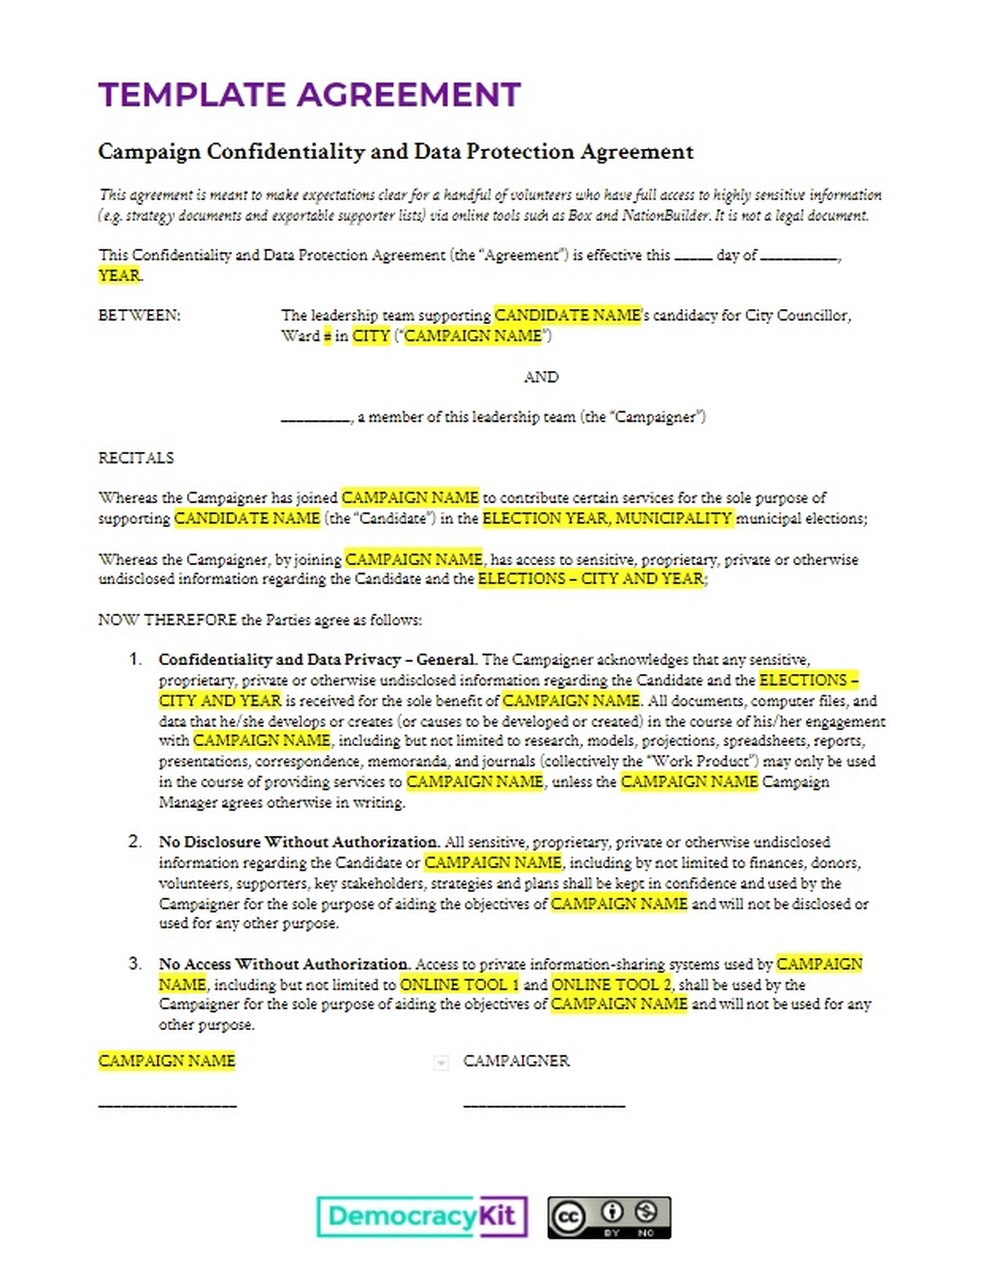 Confidentiality And Data Protection Agreement Template Civic